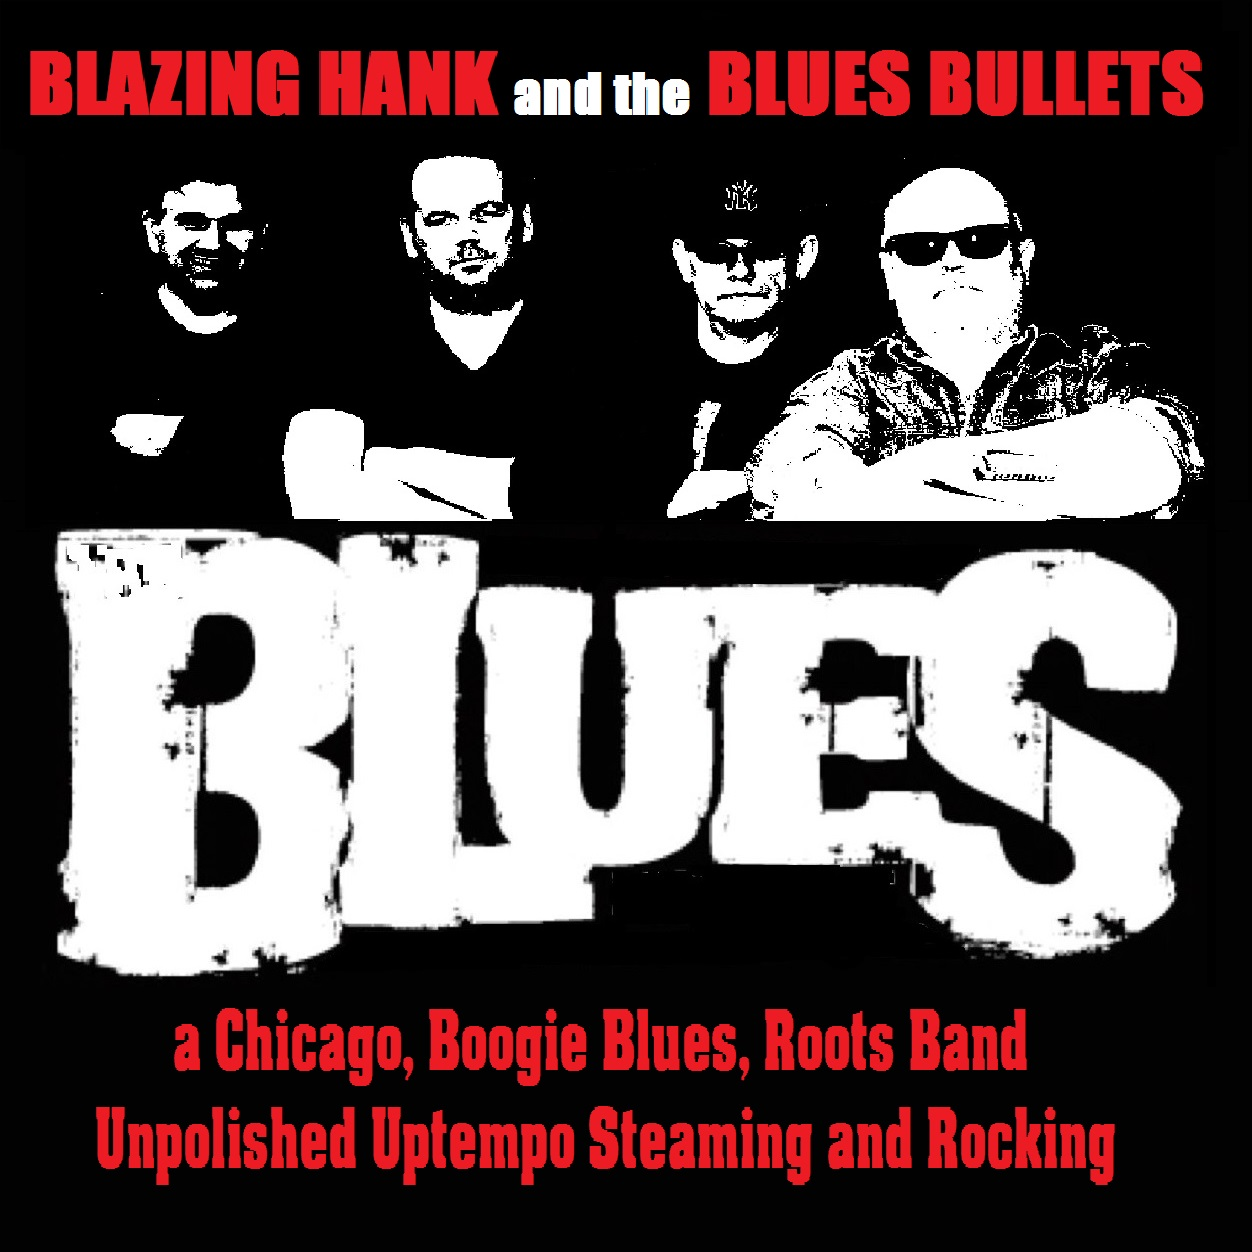 Blazing Hank & The Blues Bullets